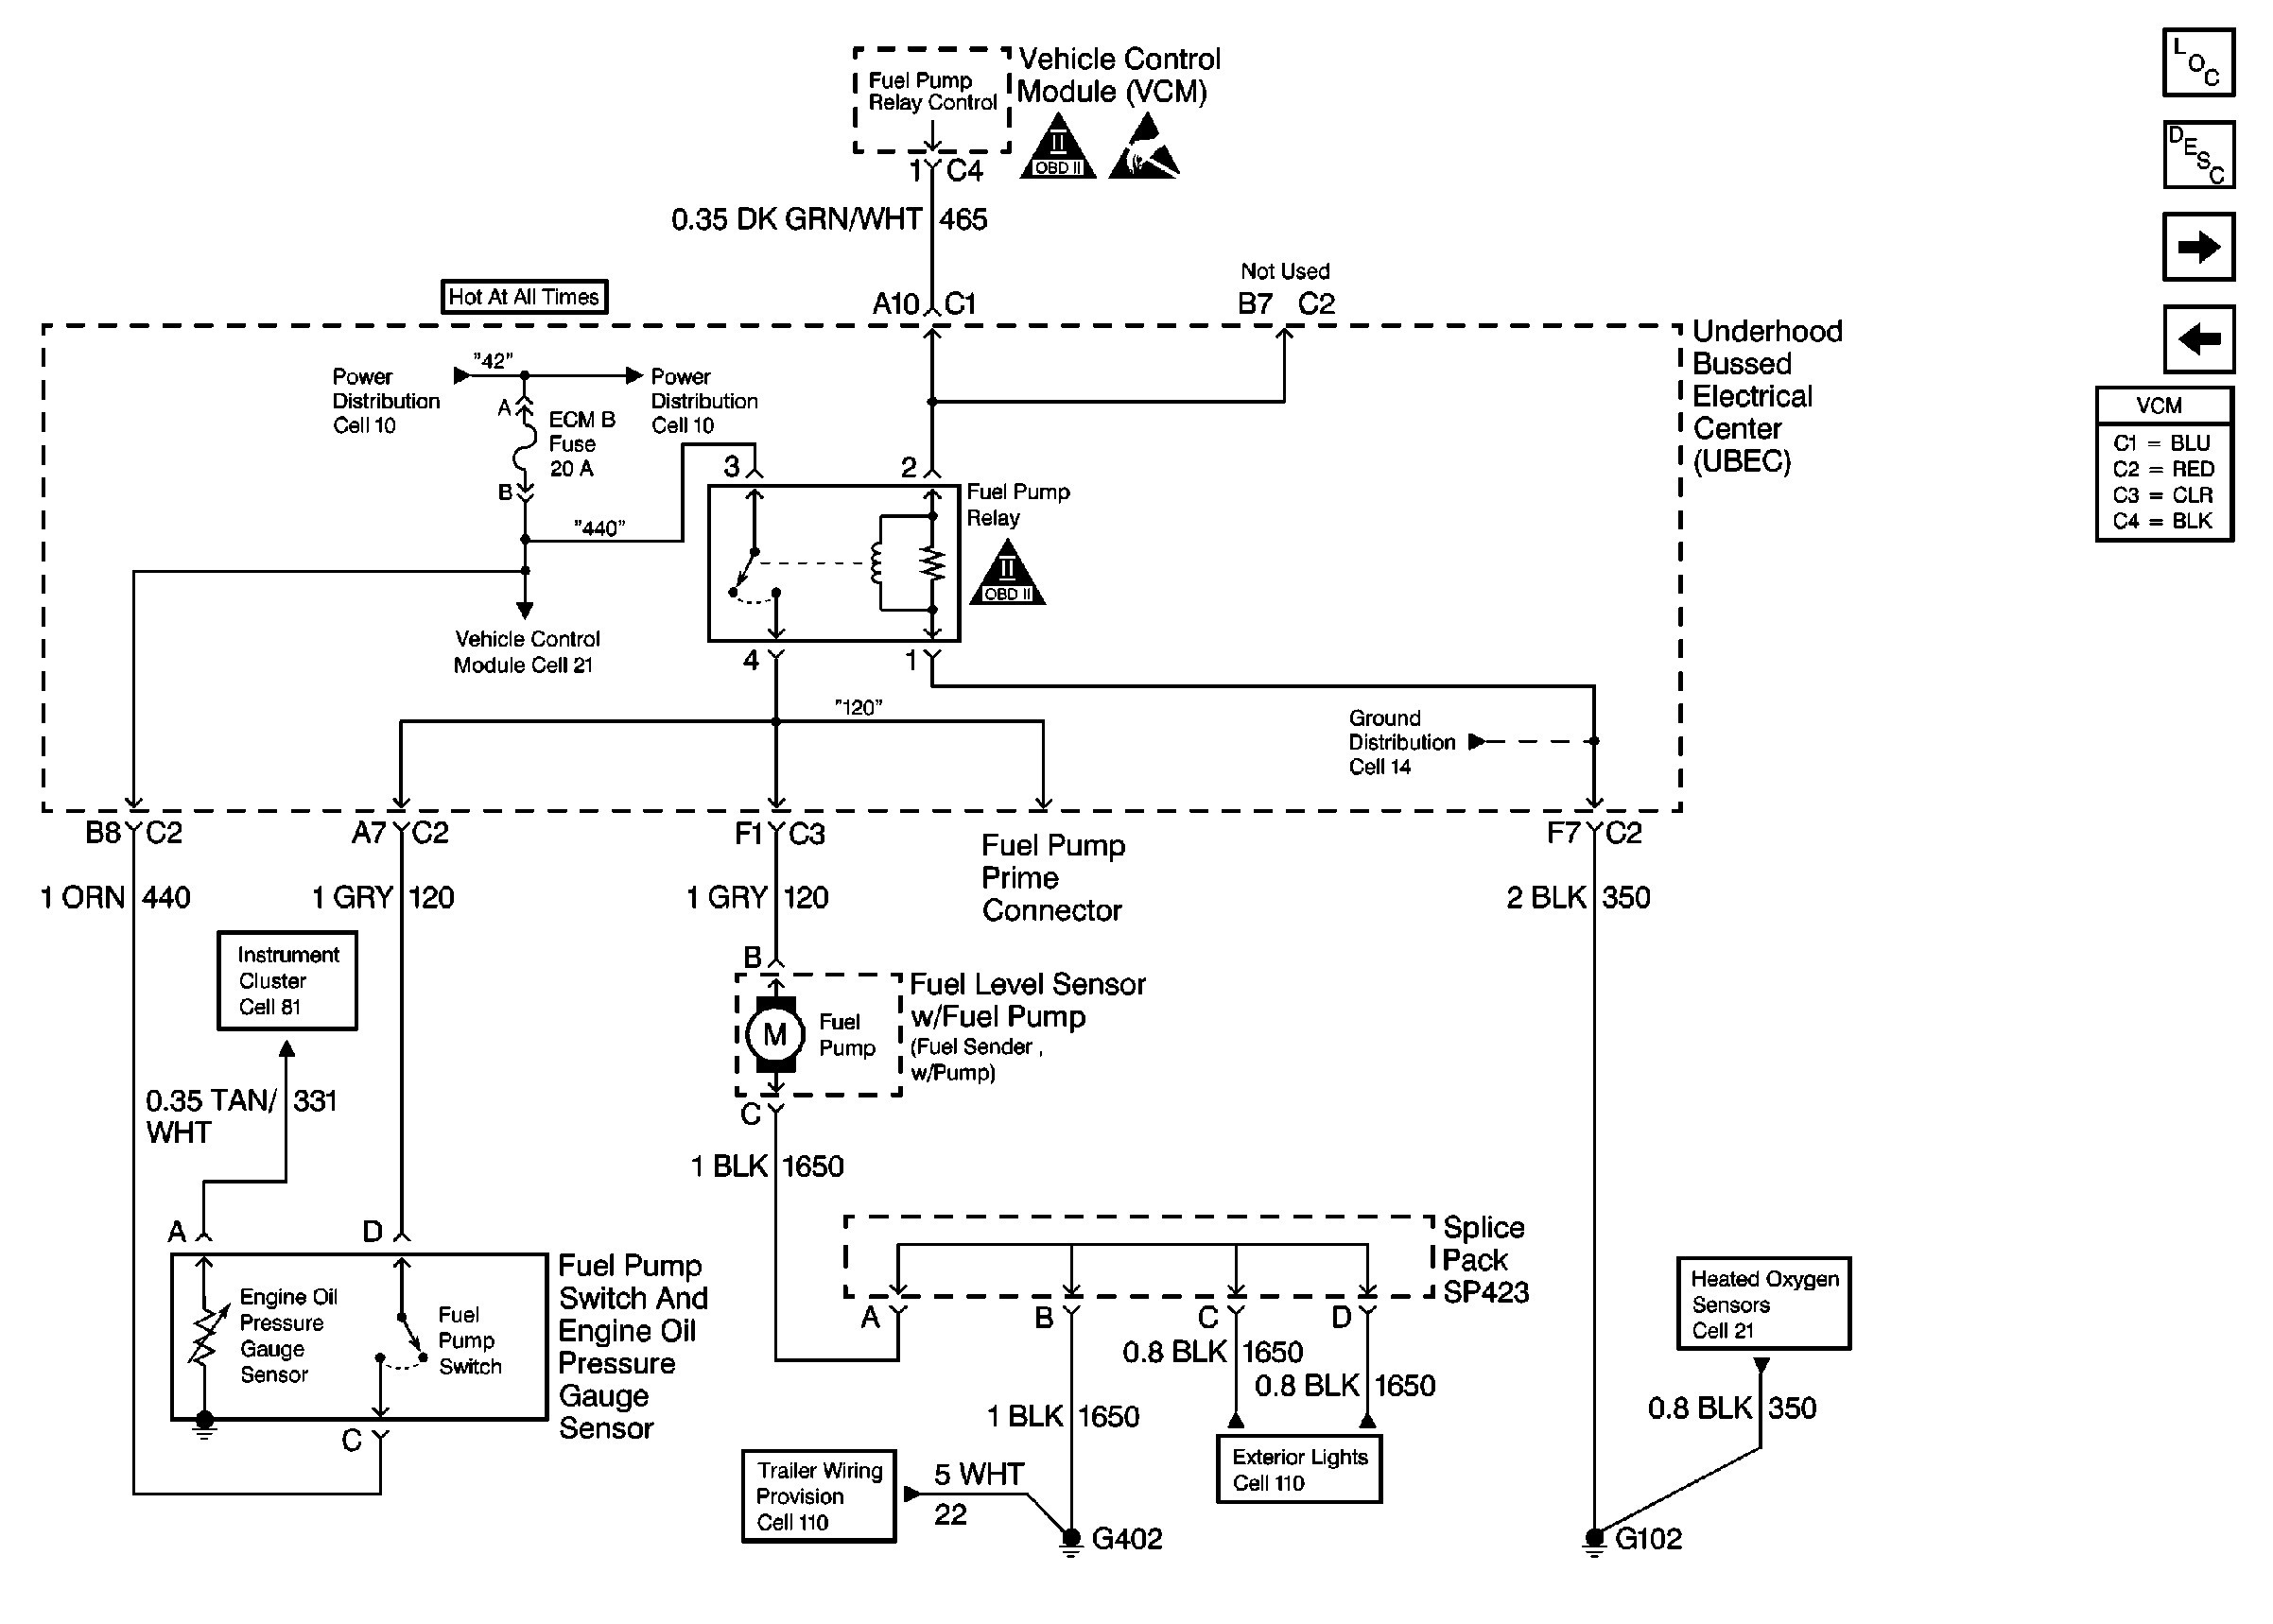 2002 Chevy Express Wiring Starter | Wiring Diagram on astro van parts diagram, 2001 astro wiring diagram, astro van firing order, astro van starter relay location, 2003 astro wiring diagram, astro van rear suspension, 2002 astro wiring diagram, astro van distributor diagram, astro van engine diagram, starcraft van wiring diagram, astro van exhaust, astro van heater diagram, astro van door panel removal, toyota van wiring diagram, astro van components diagram, astro van timing, chevy van wiring diagram, astro van fuse box diagram, astro van air conditioning diagram, astro van manual,